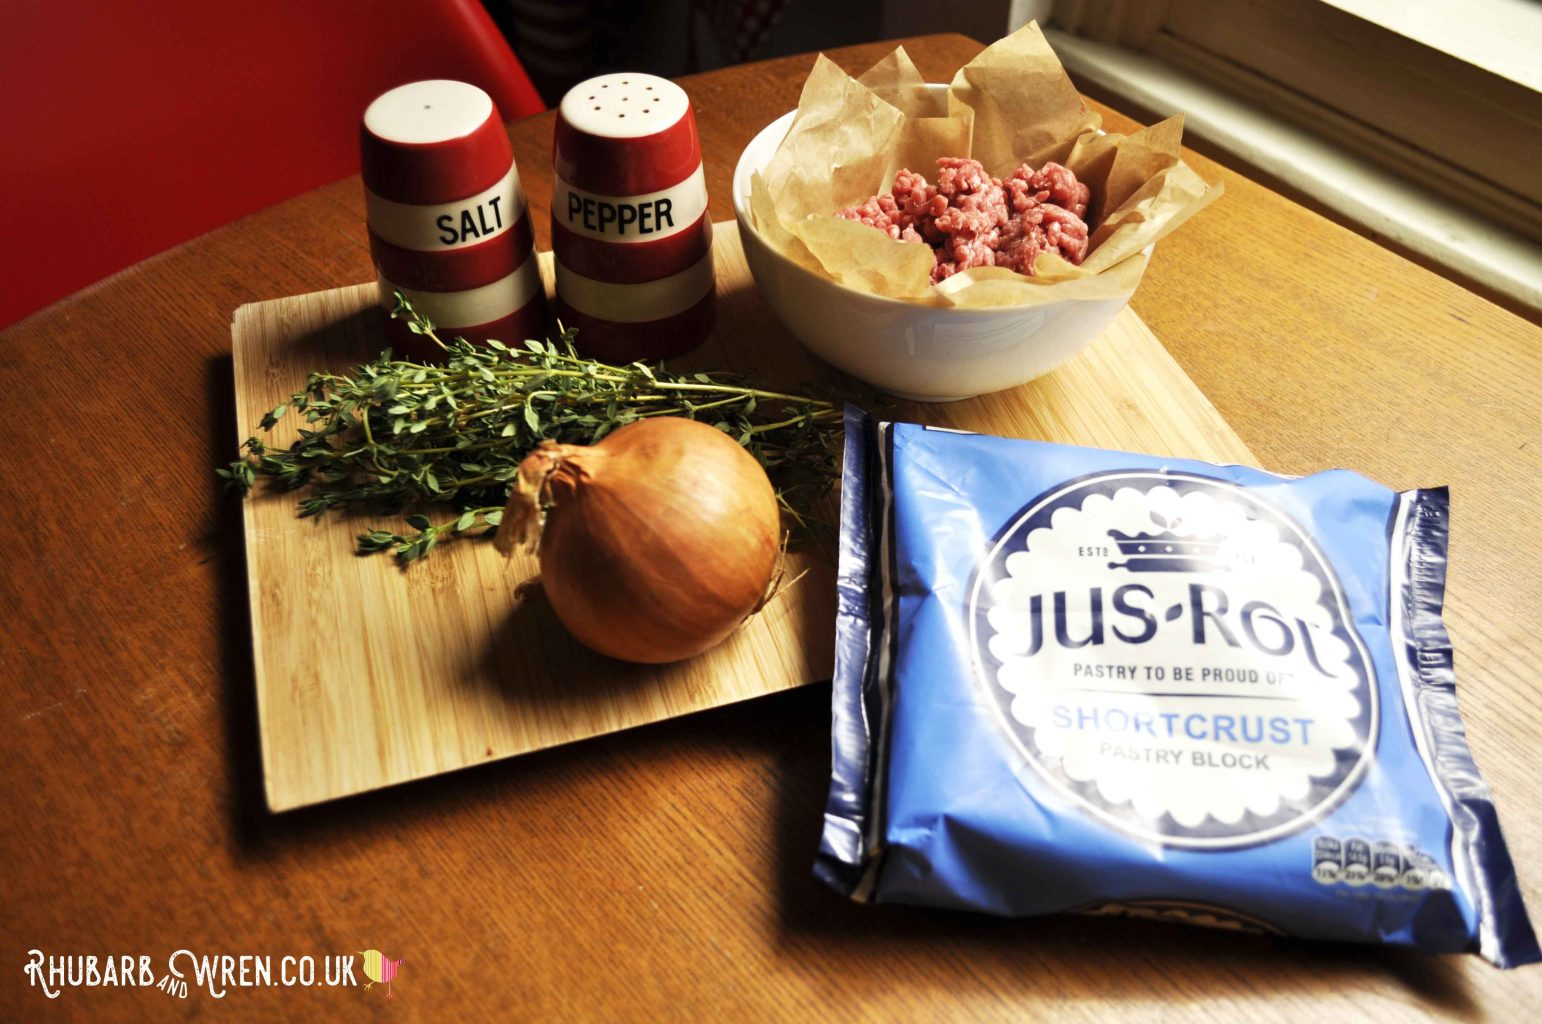 Ingredients for making beef rissoles